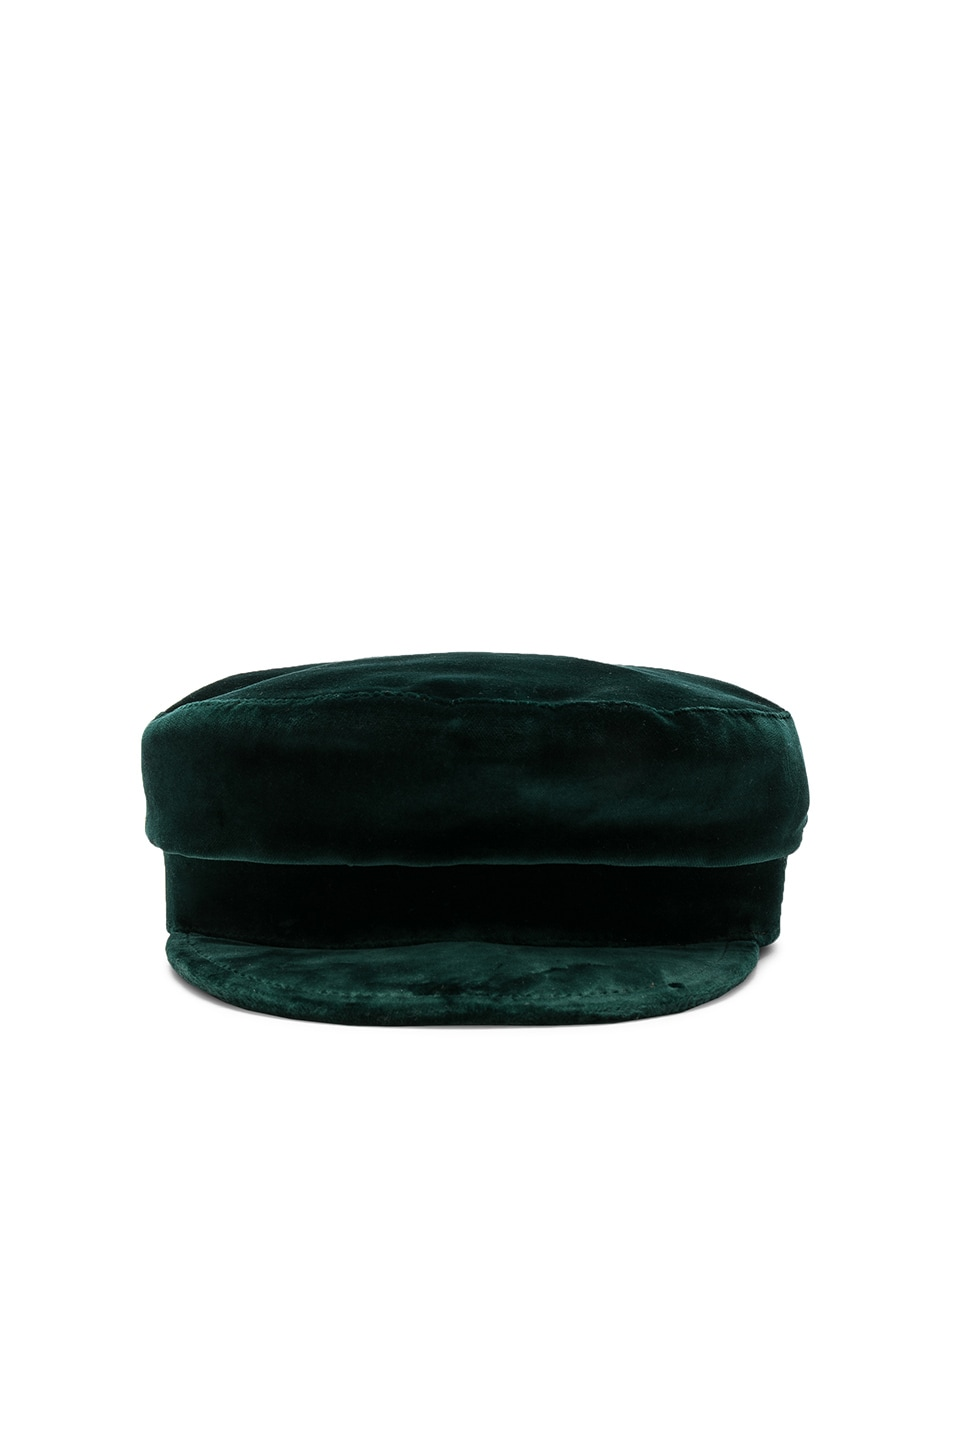 Image 1 of Janessa Leone Mattie Fisherman Velvet Cap in Emerald